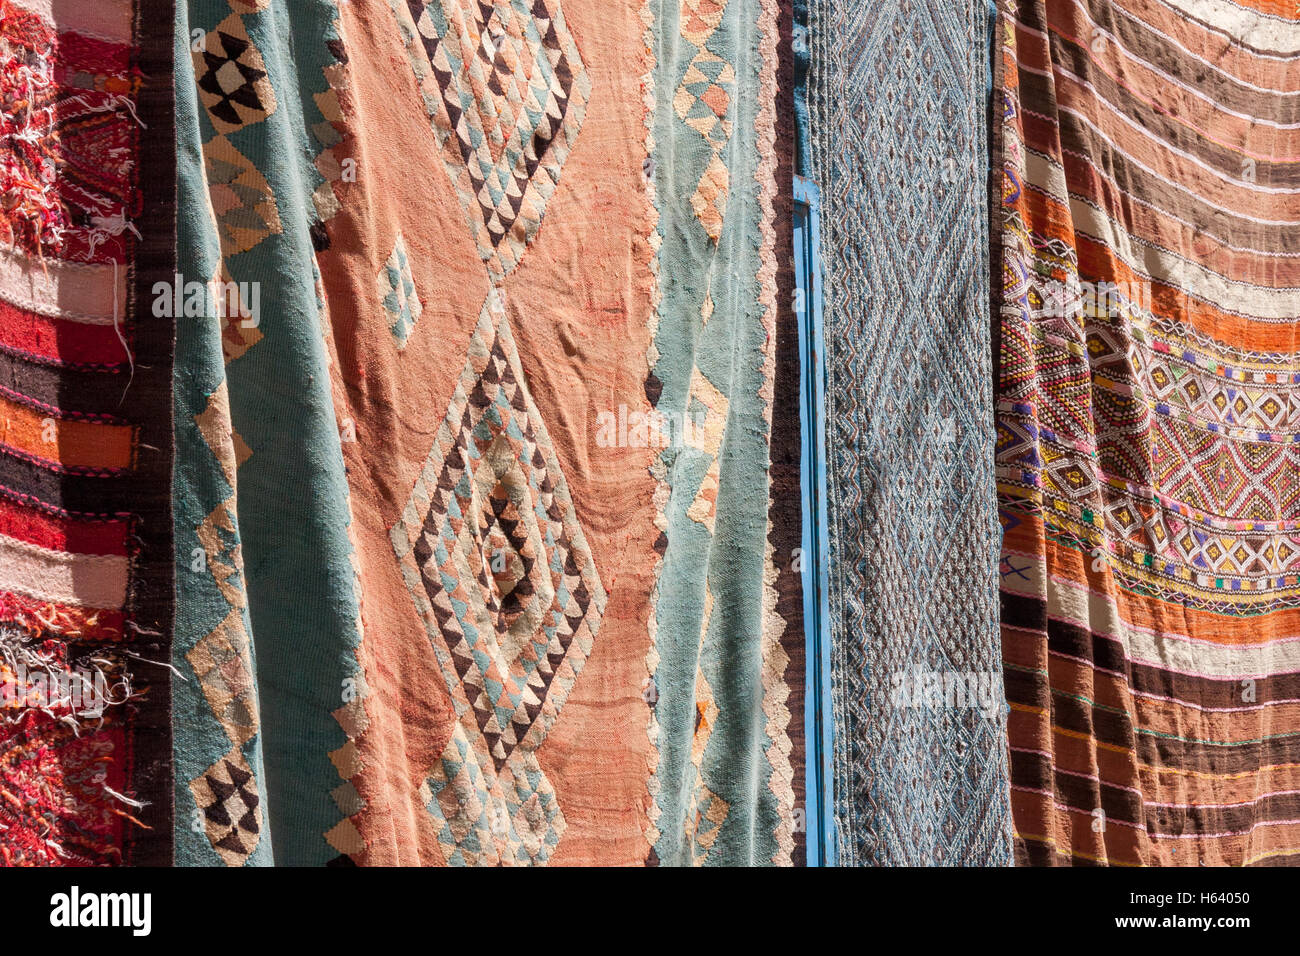 Hanging Rugs Hanging Rugs On Sale In Tunisia Stock Photo Royalty Free Image